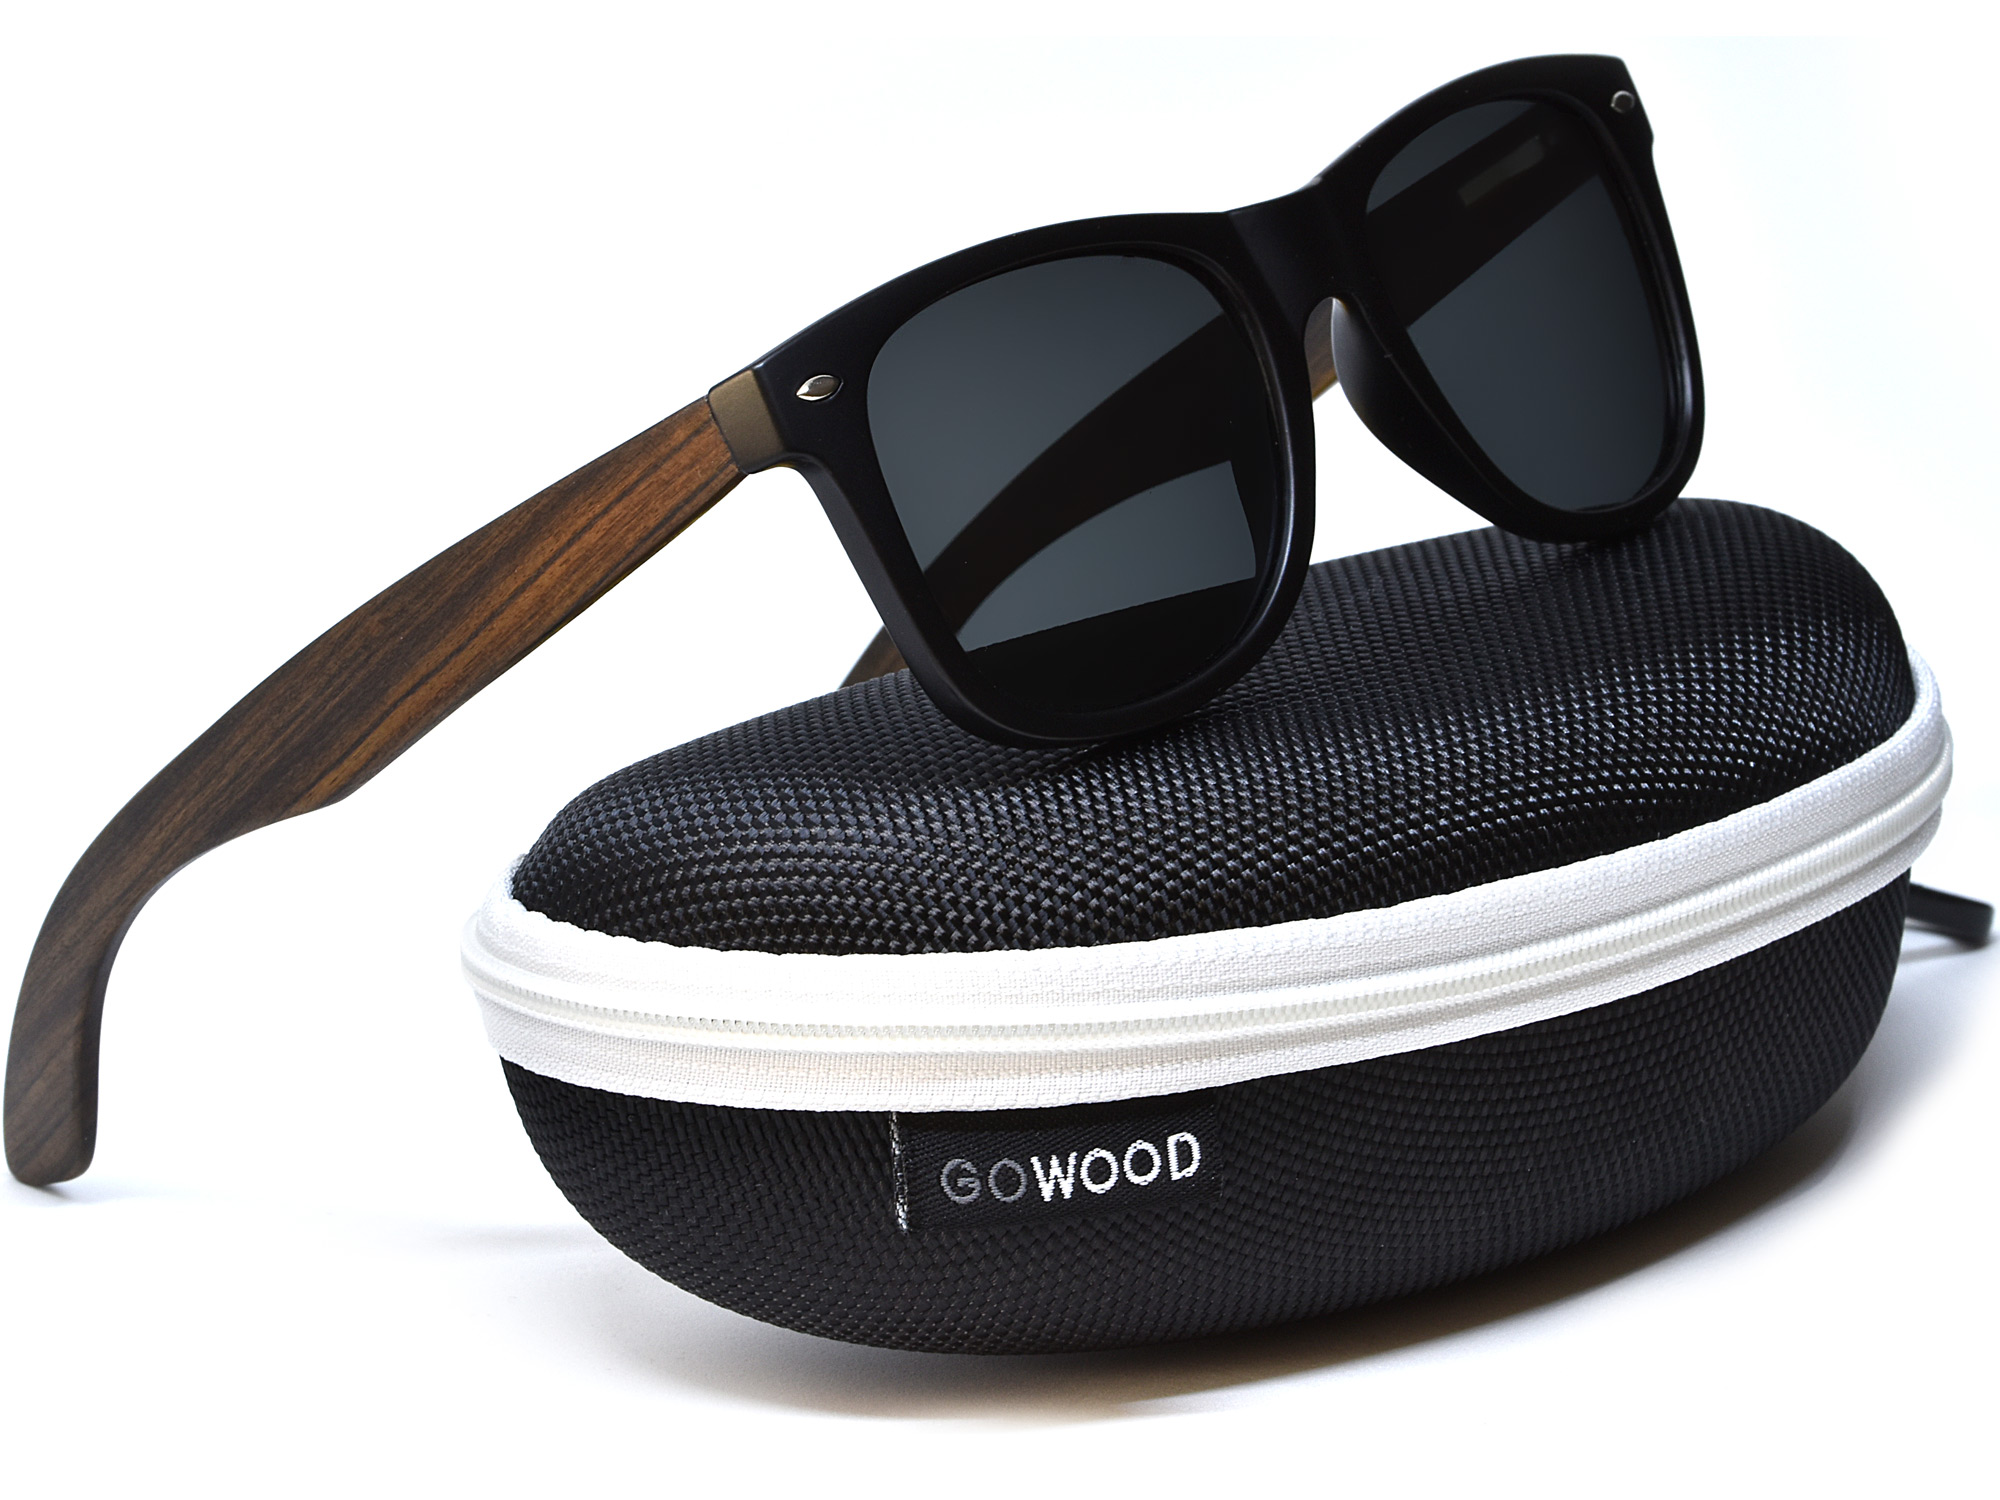 Ebony wood sunglasses with black polarized lenses in a zipper case